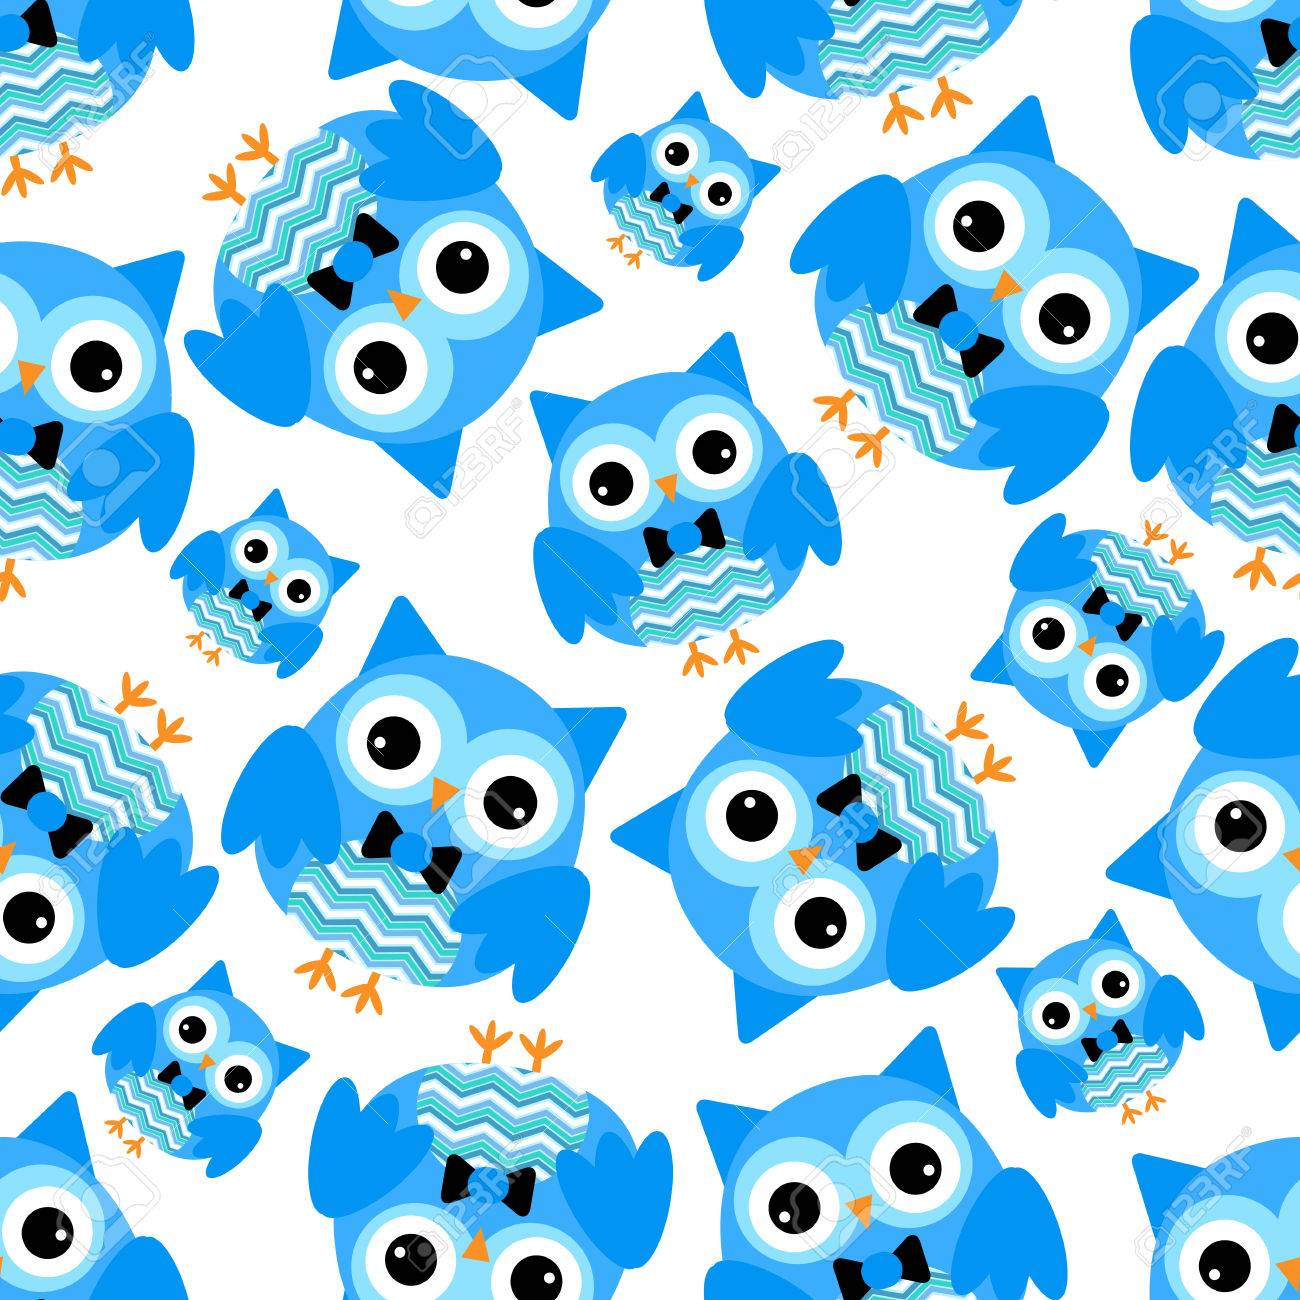 Seamless Background With Cute Blue Owls Suitable For Wrapping Paper And Wallpaper Stock Vector